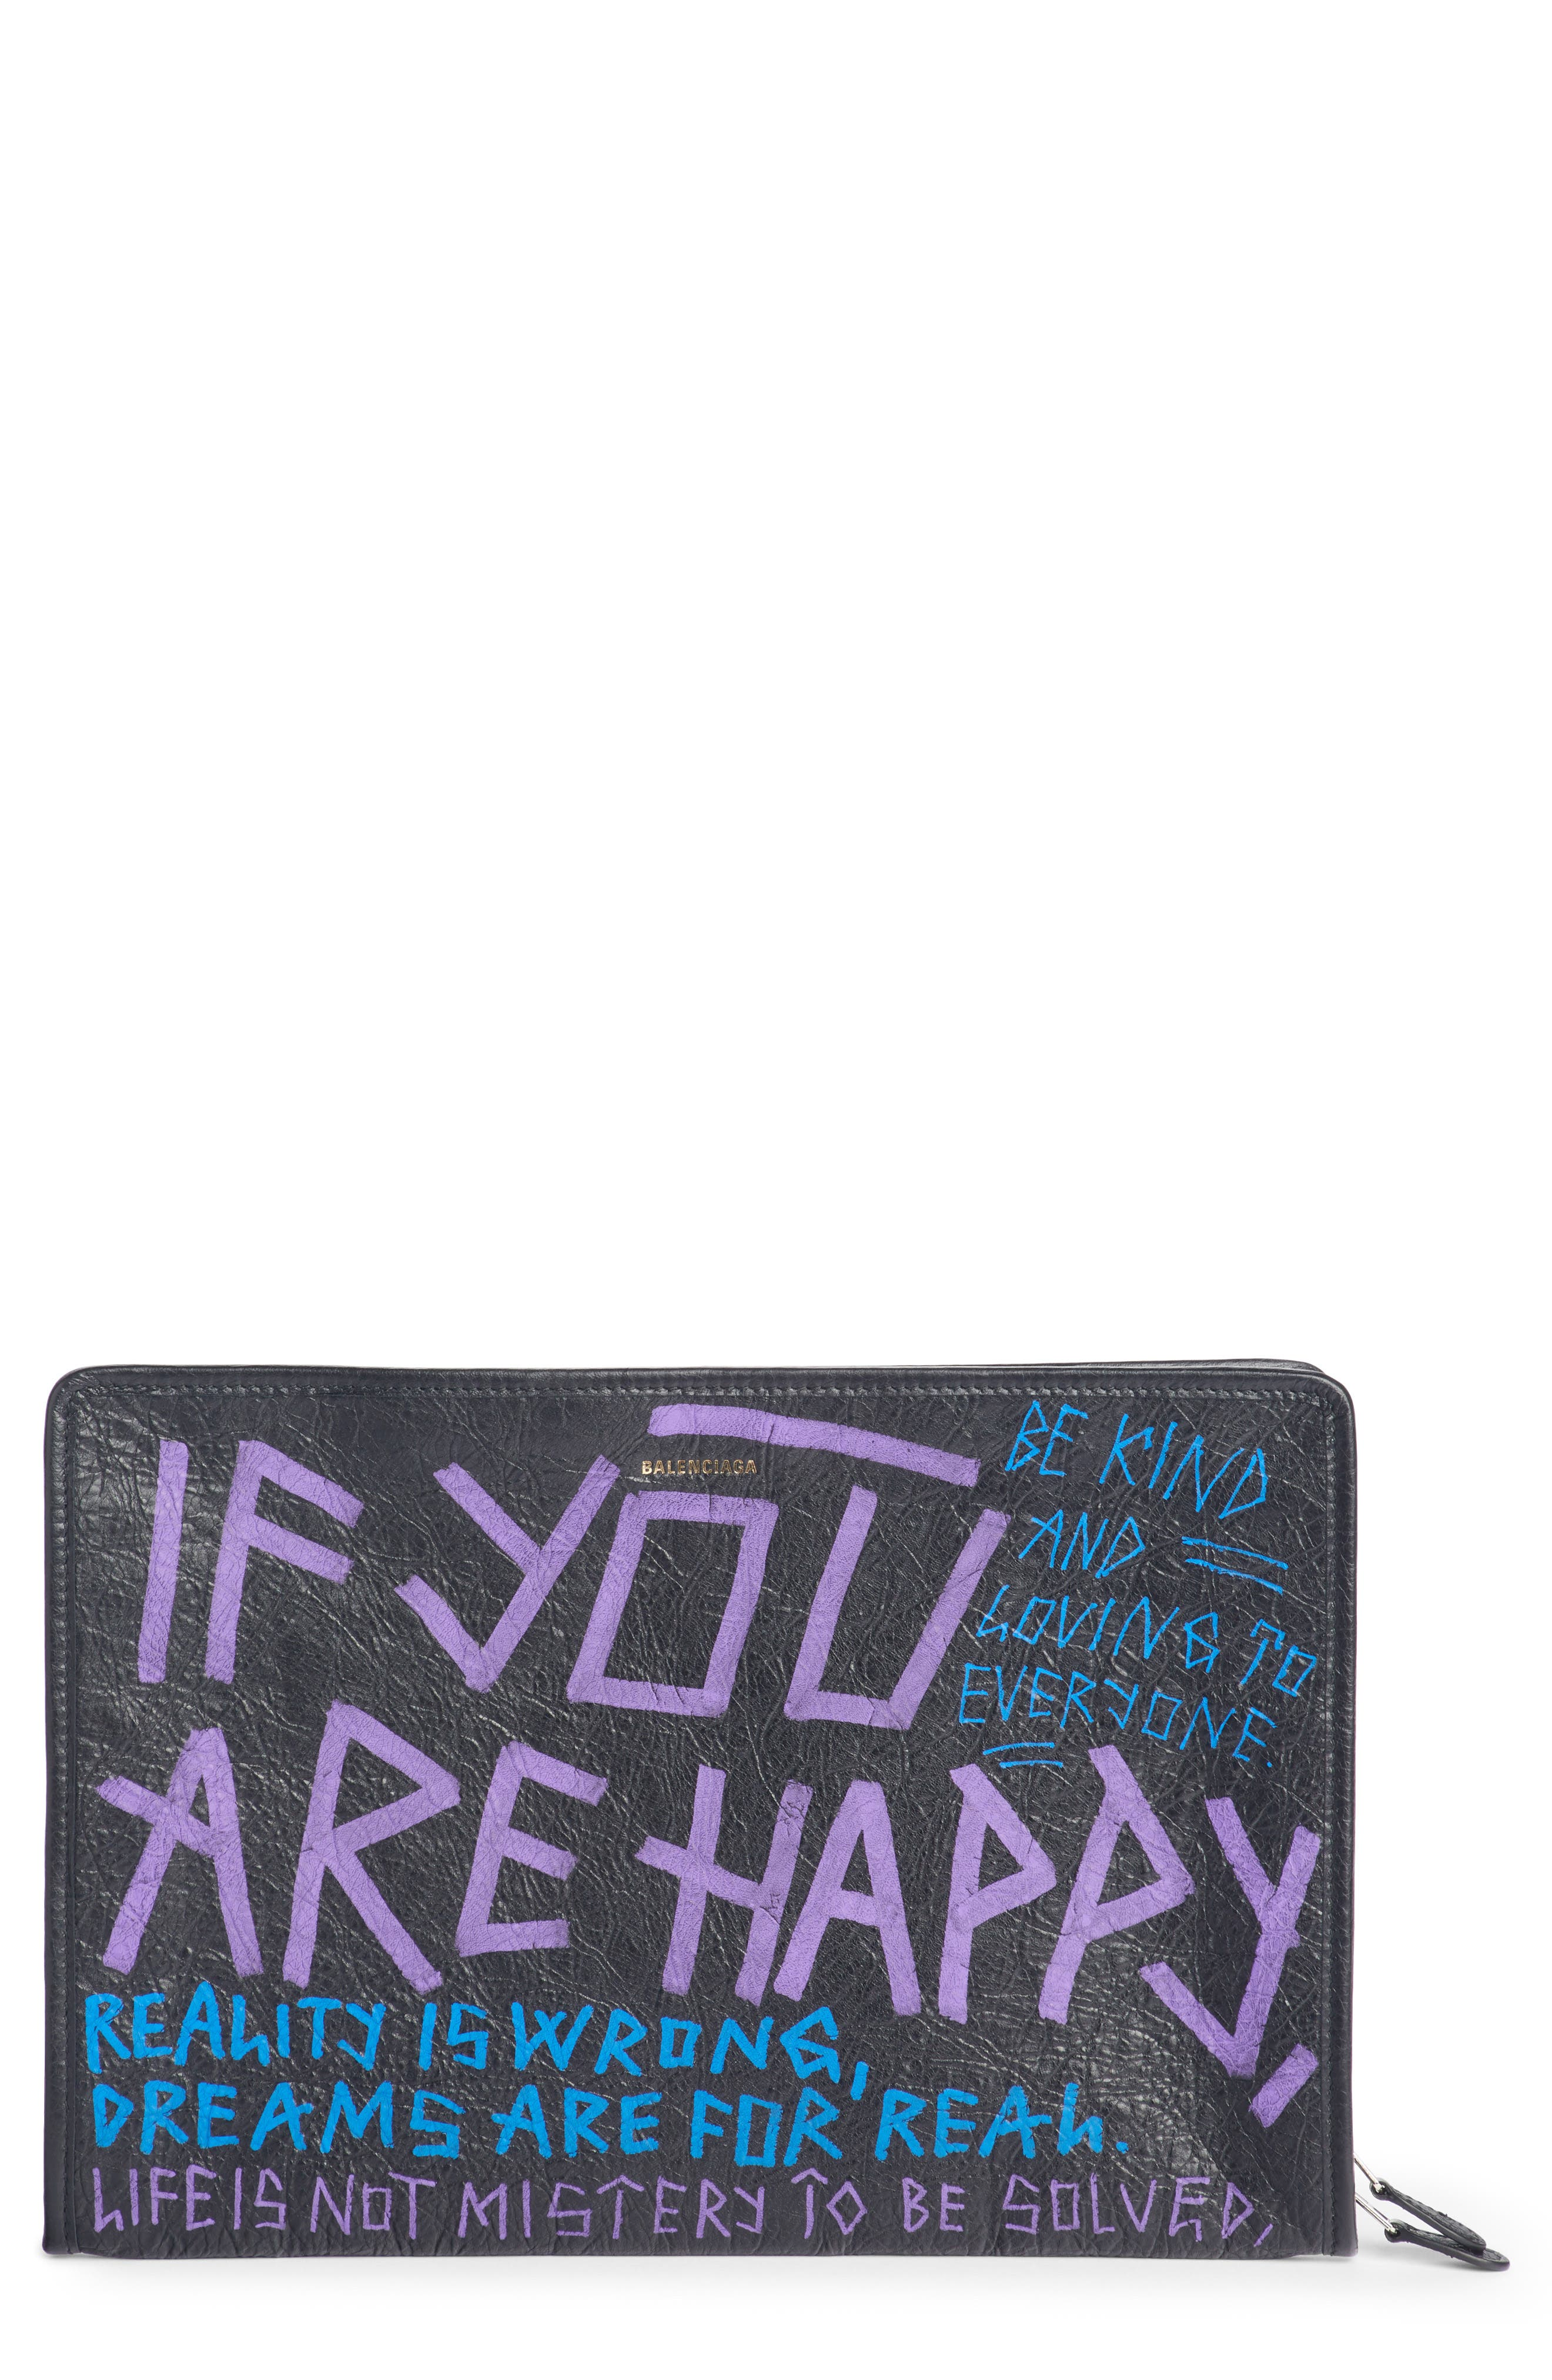 Bazar 'If You Are Happy, Be Kind' Graffiti Leather Pouch Bag in Black